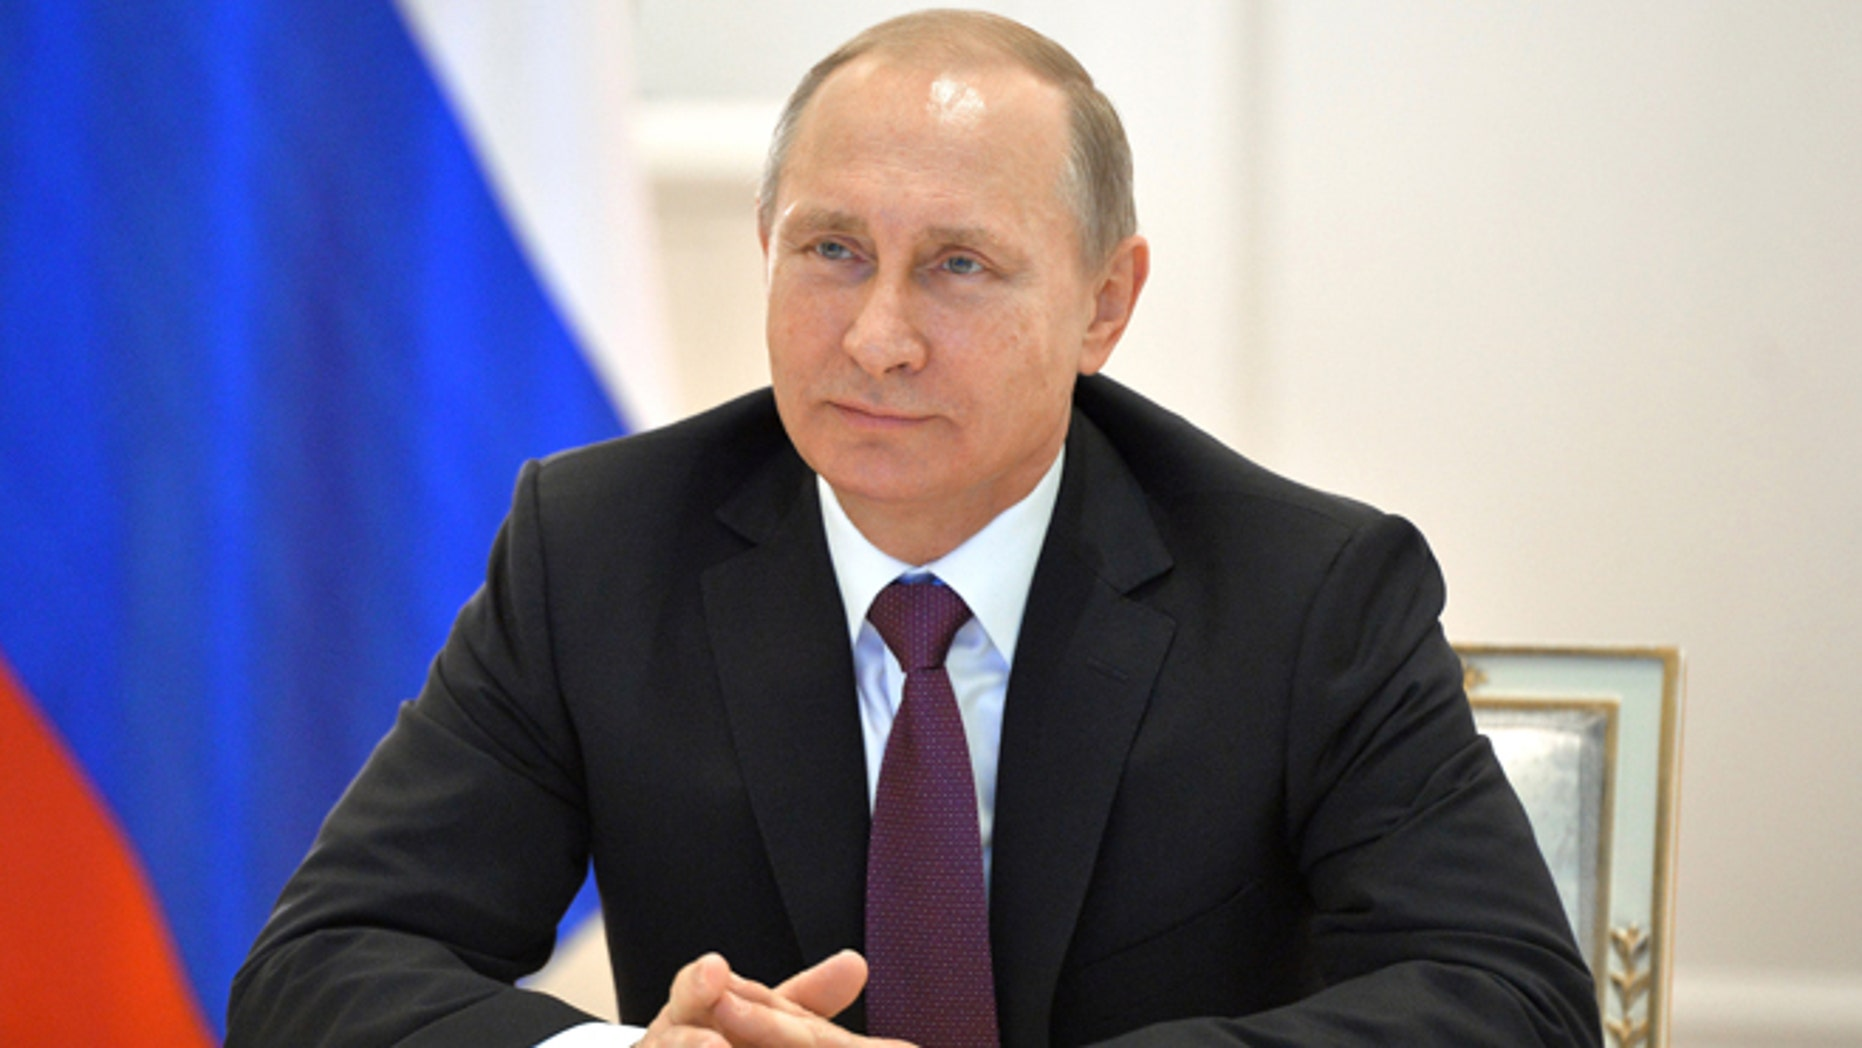 Russian President Vladimir Putin smiles during a live video link with members of Russian Geographical Society expedition to the Southern Pole in Moscow's Kremlin, Russia on Friday, Dec. 26, 2014.